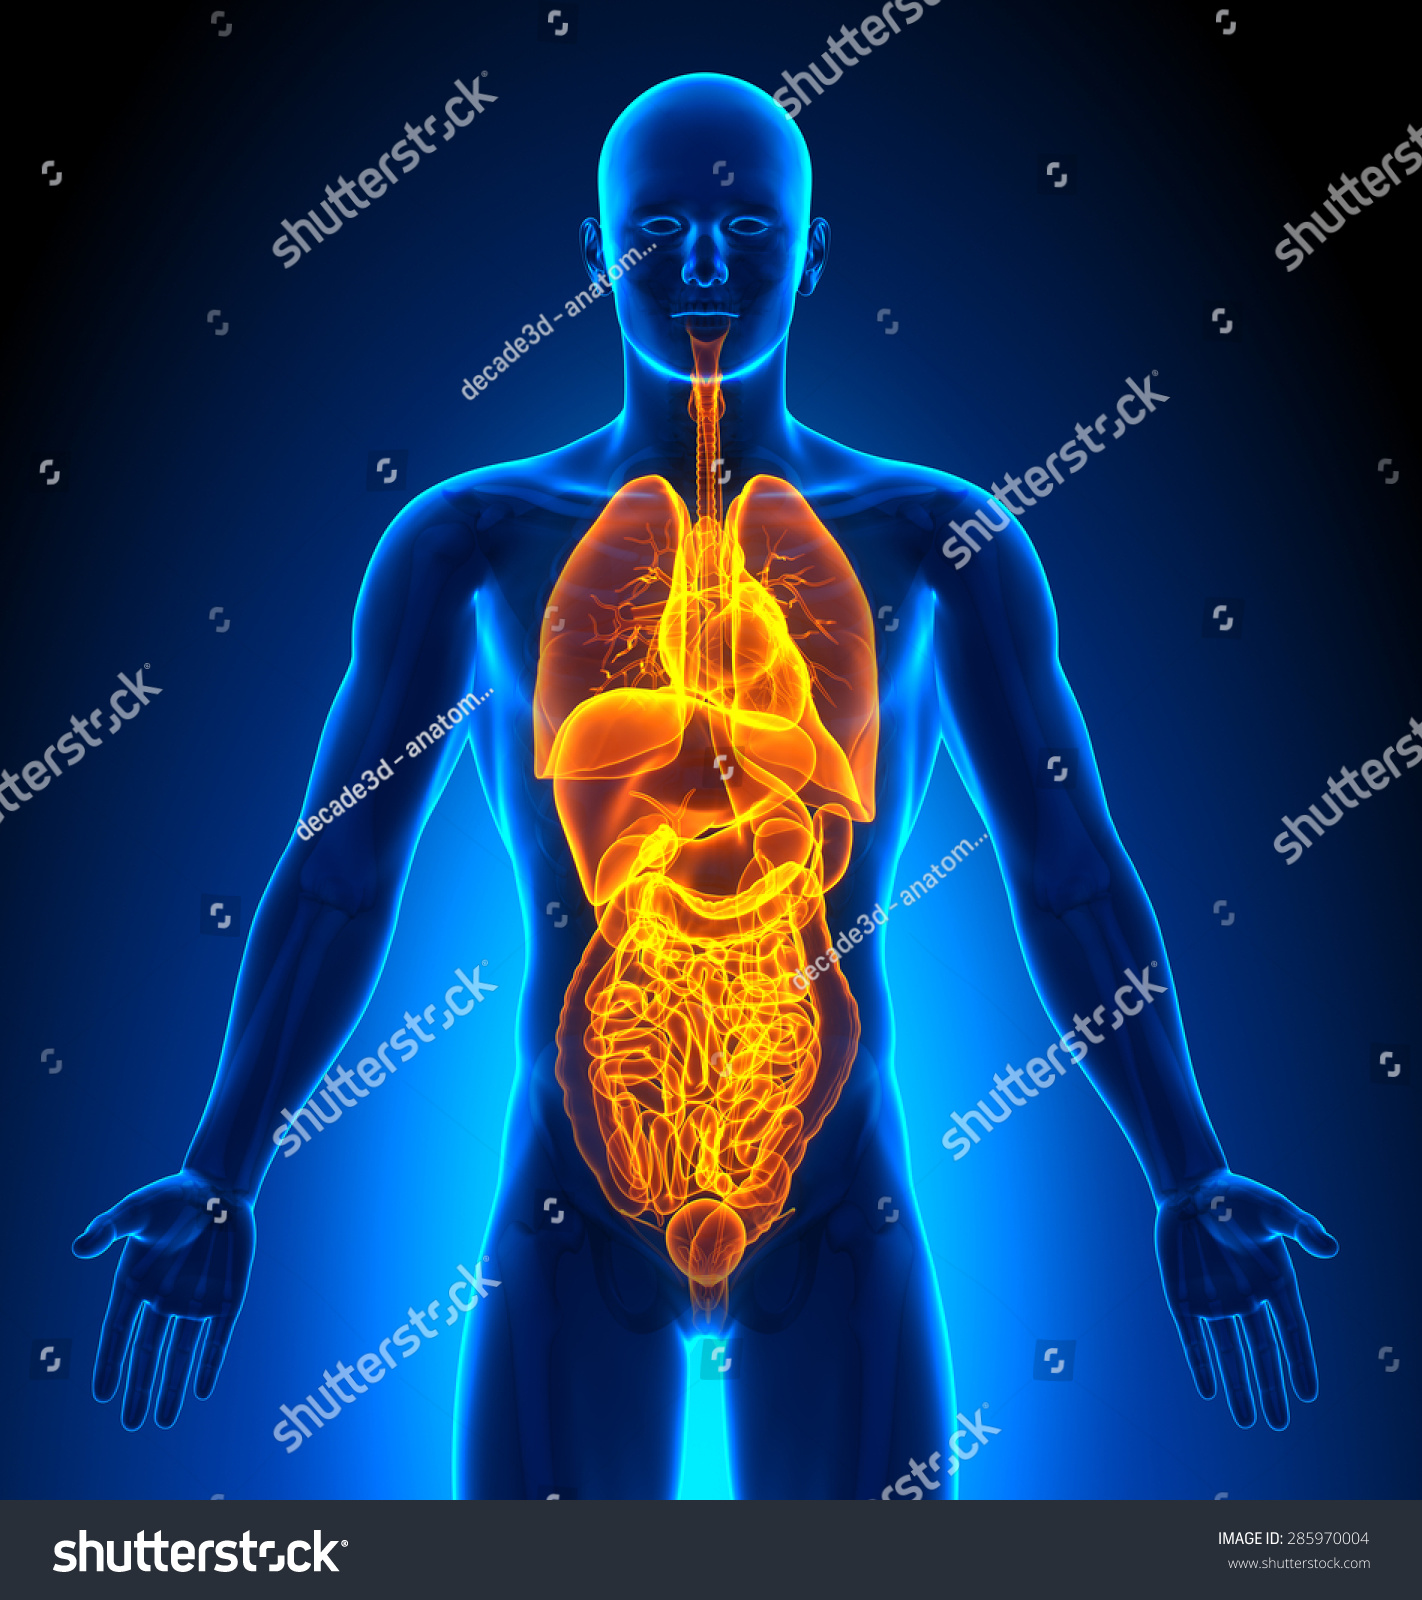 Internal Organs Male Organs Human Anatomy Stock Illustration